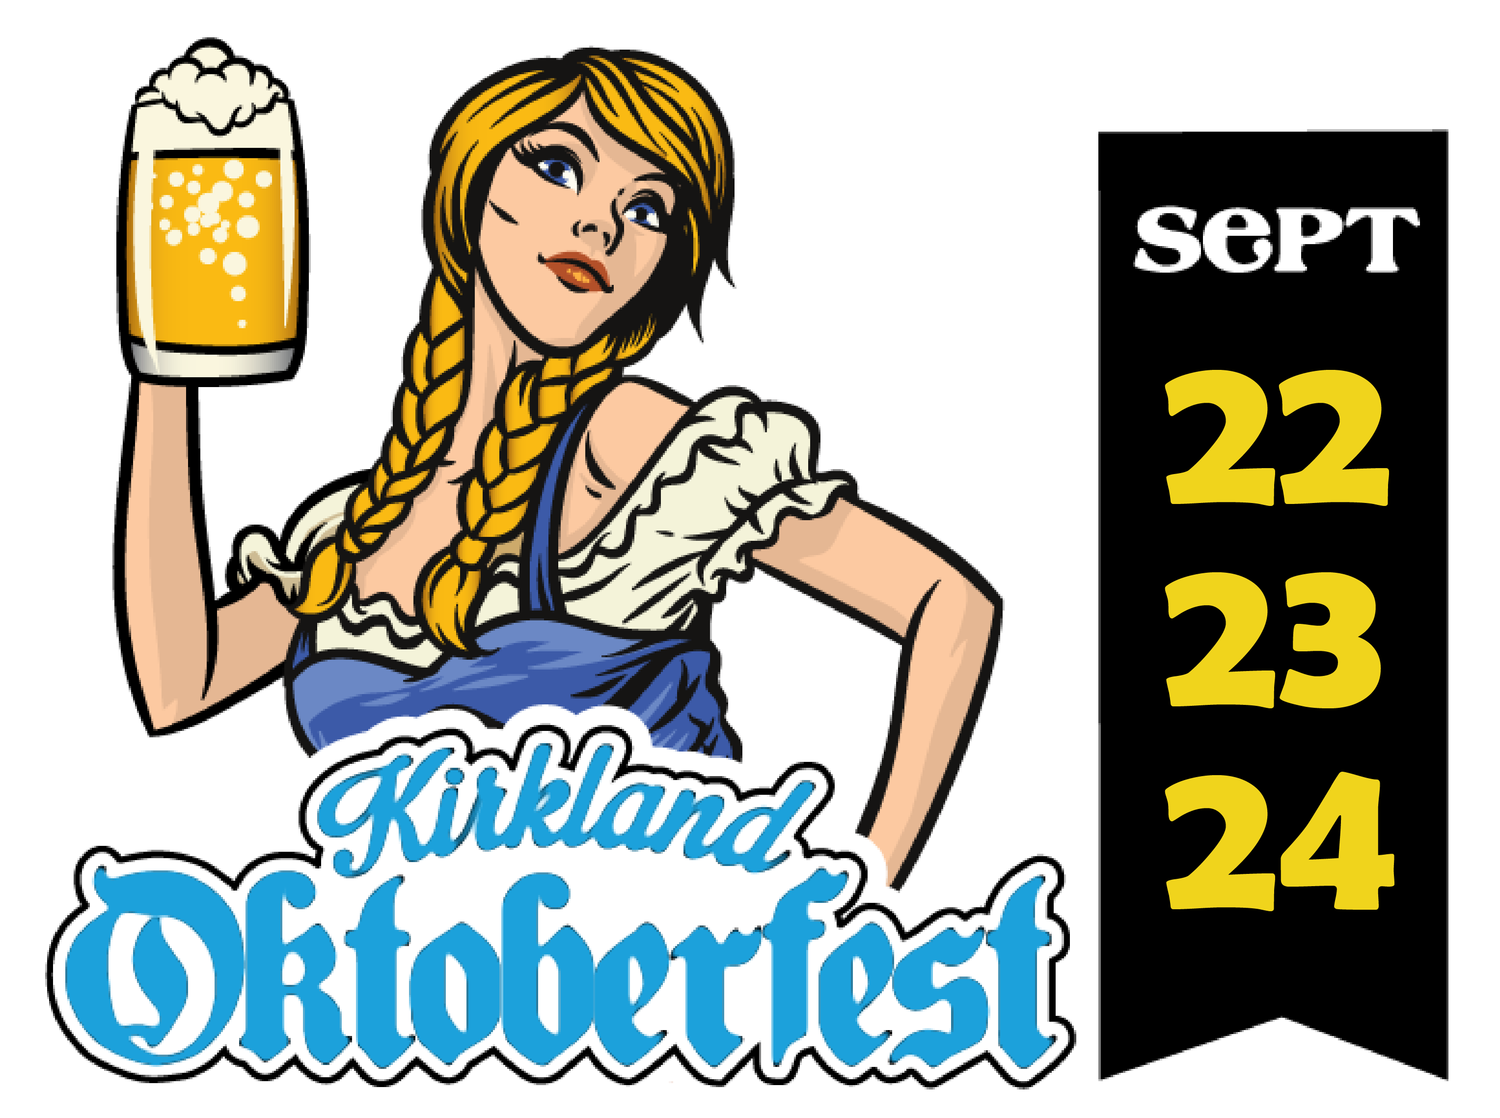 Kirkland Oktoberfest - September 22-24, 2018  | Chump Change